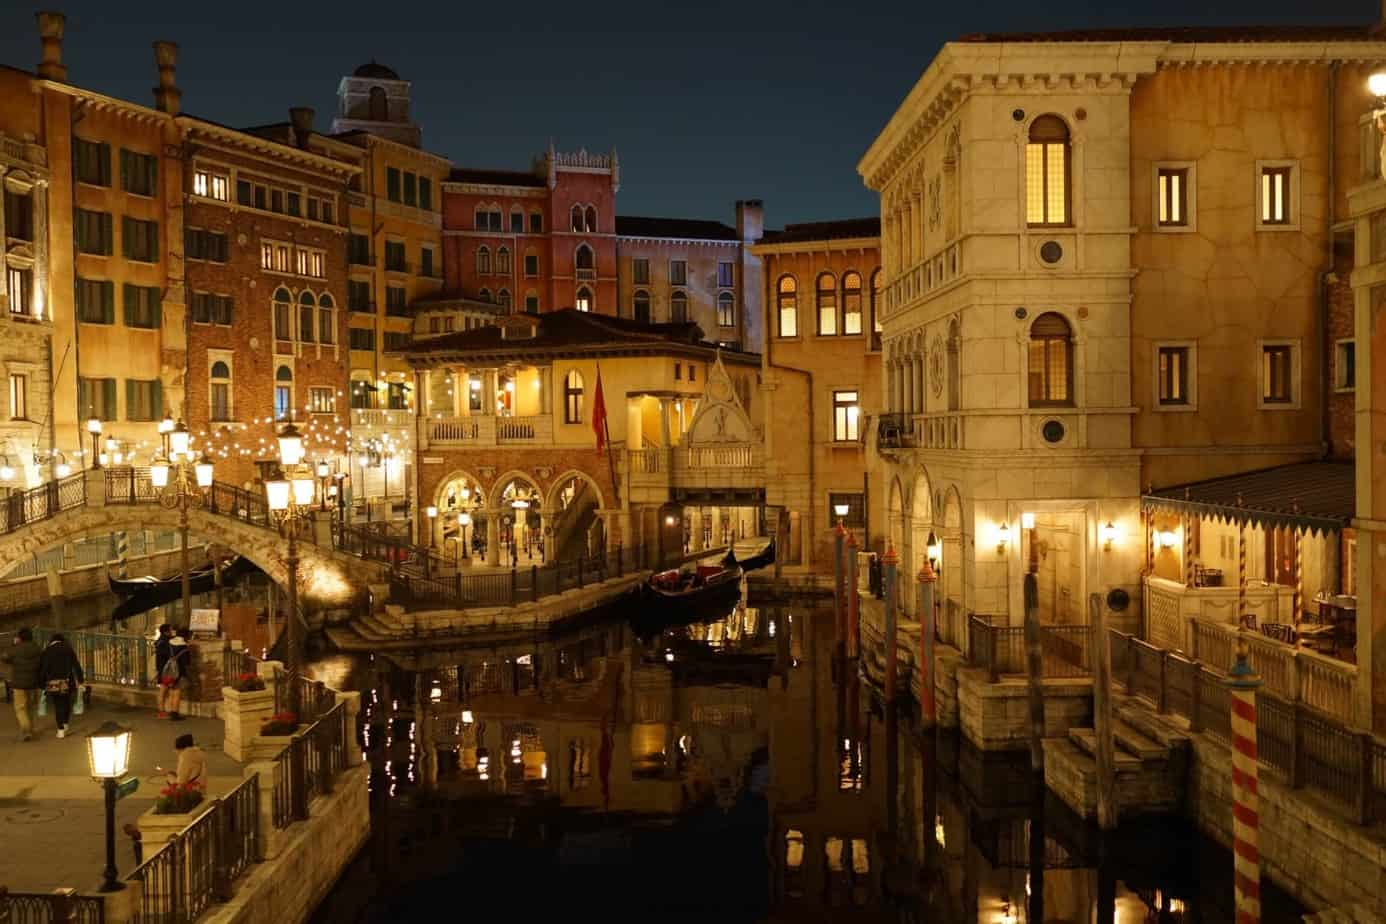 Behind the main area for the Mediterranean Harbor Tokyo DisneySea